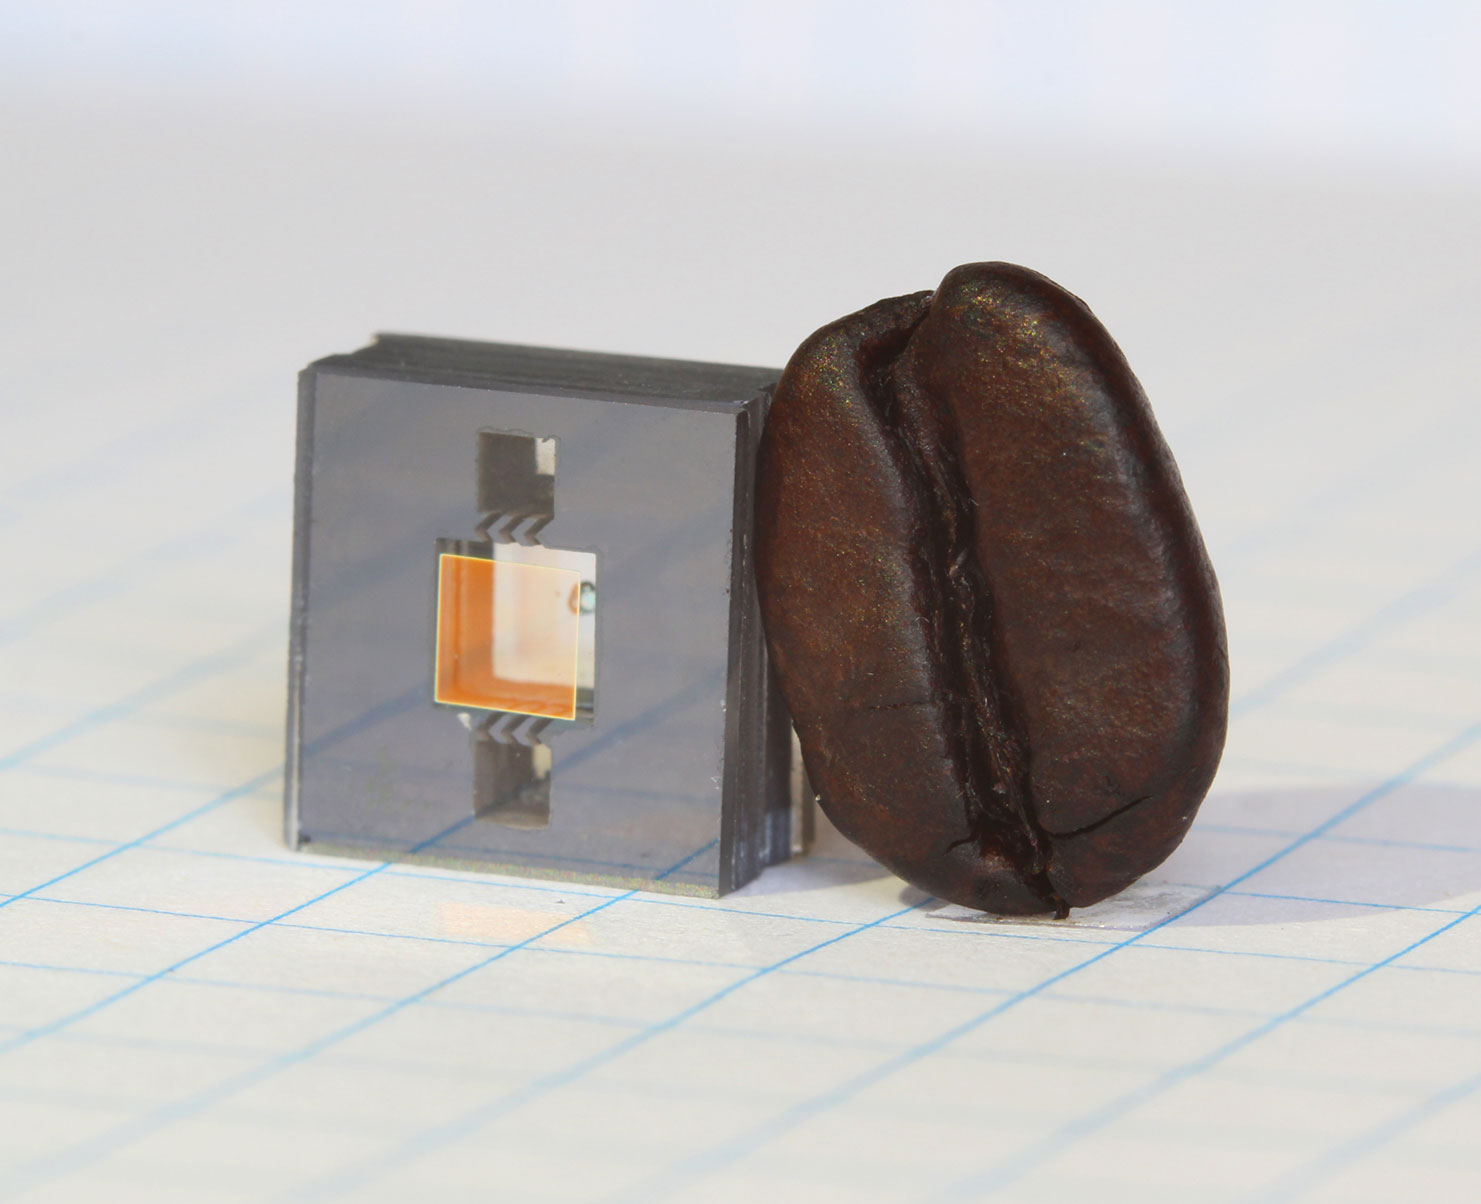 small atomic clock with coffee bean for scale